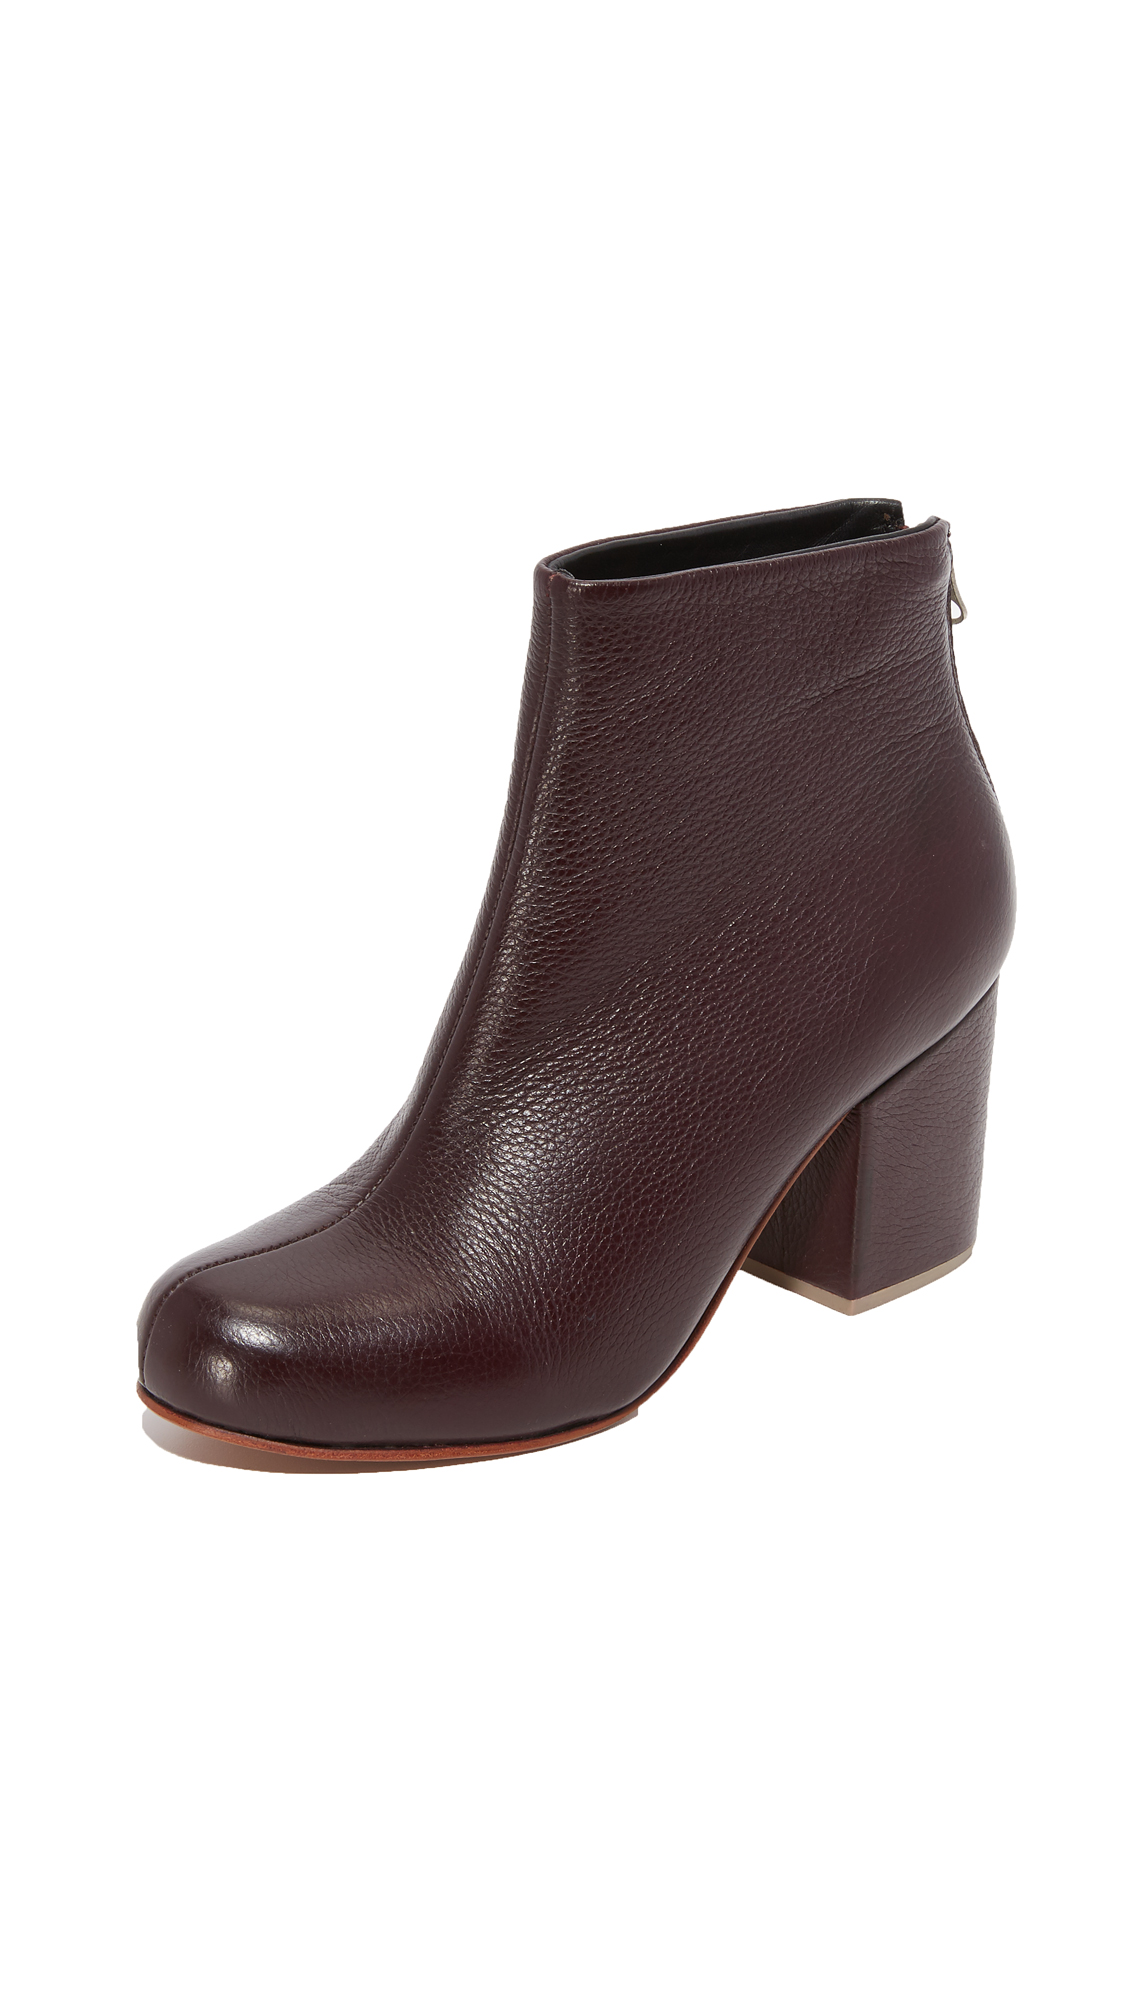 Rachel Comey Tilden Booties - Bordo